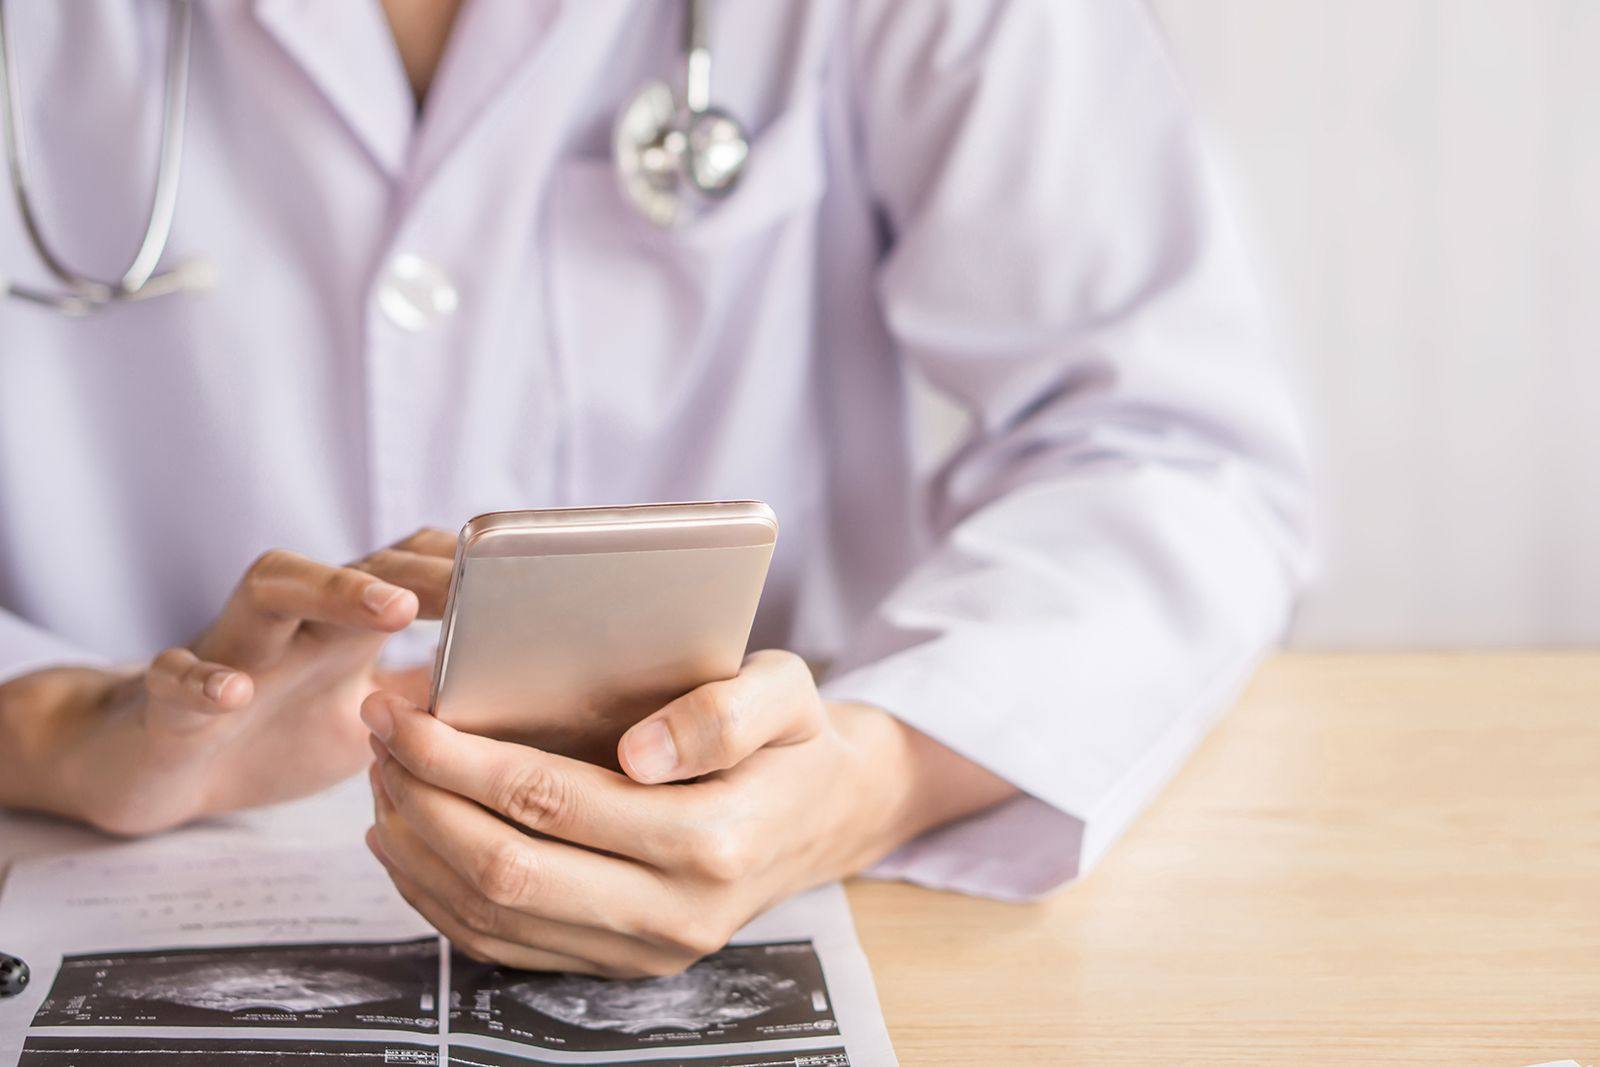 What are the best HIPAA compliant telehealth apps for virtual doctor visits?